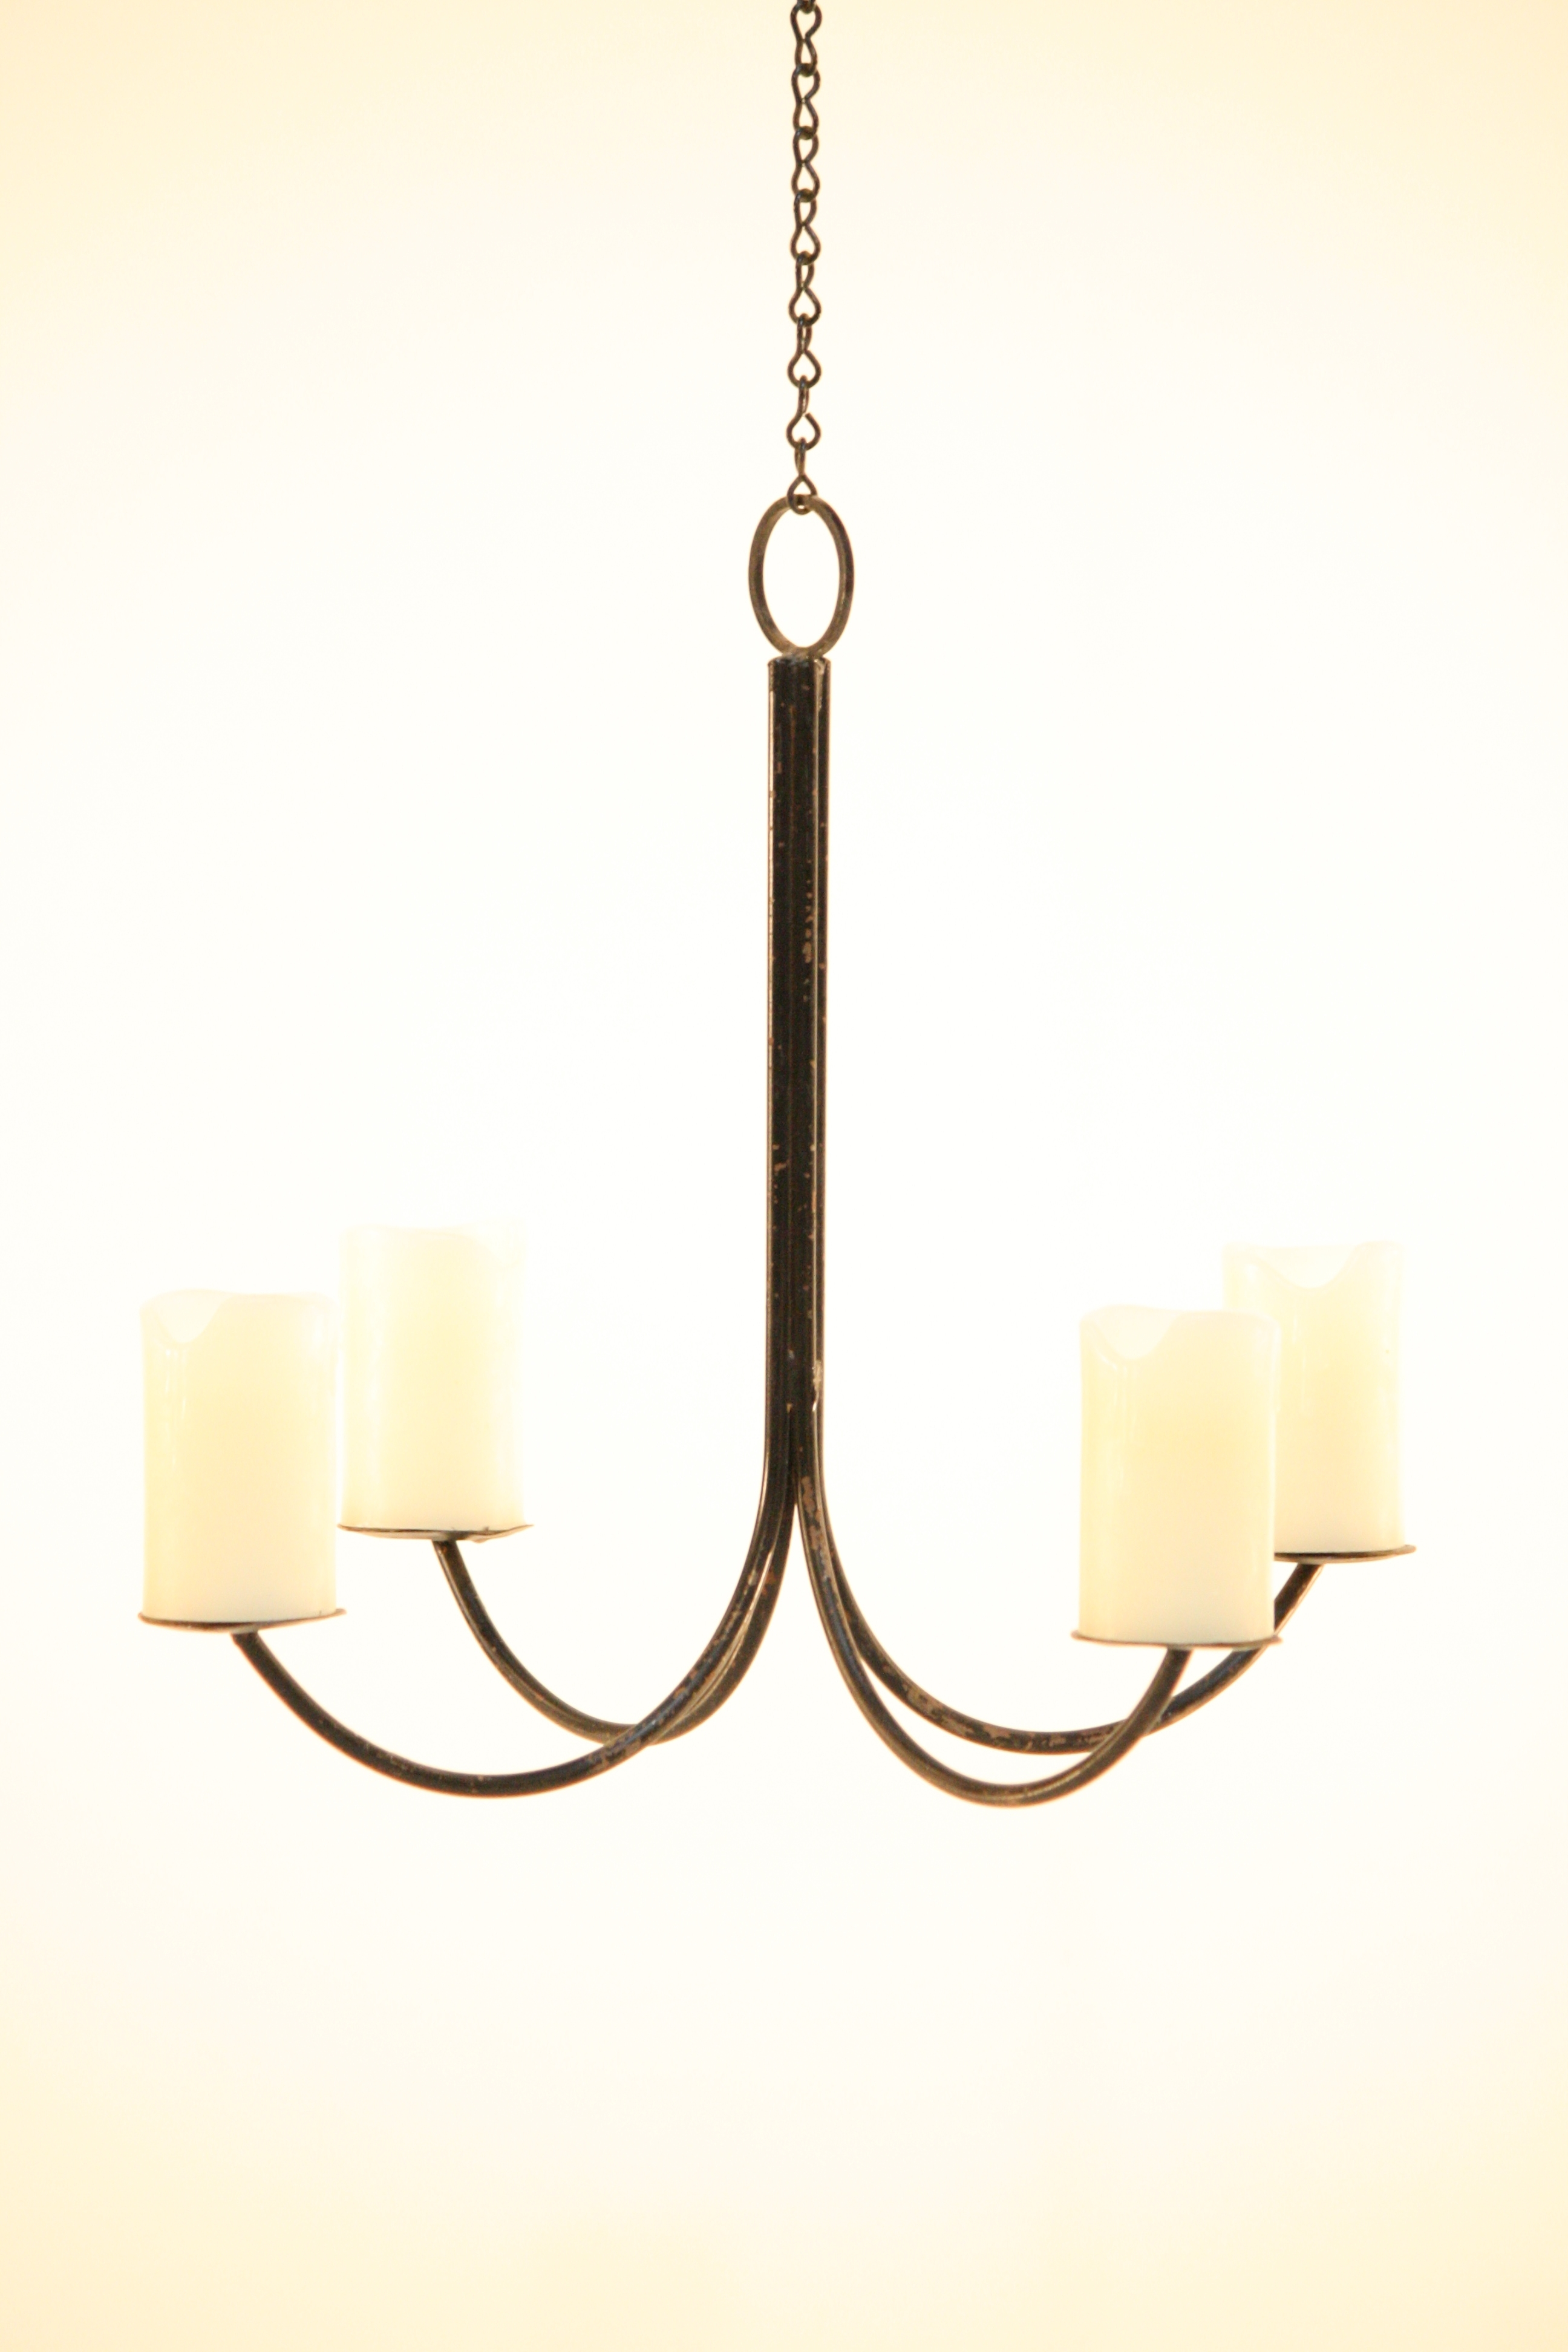 Newest Hanging Candle Chandeliers With Regard To Hanging Candle Chandelier Uk – Chandelier Designs (View 14 of 15)